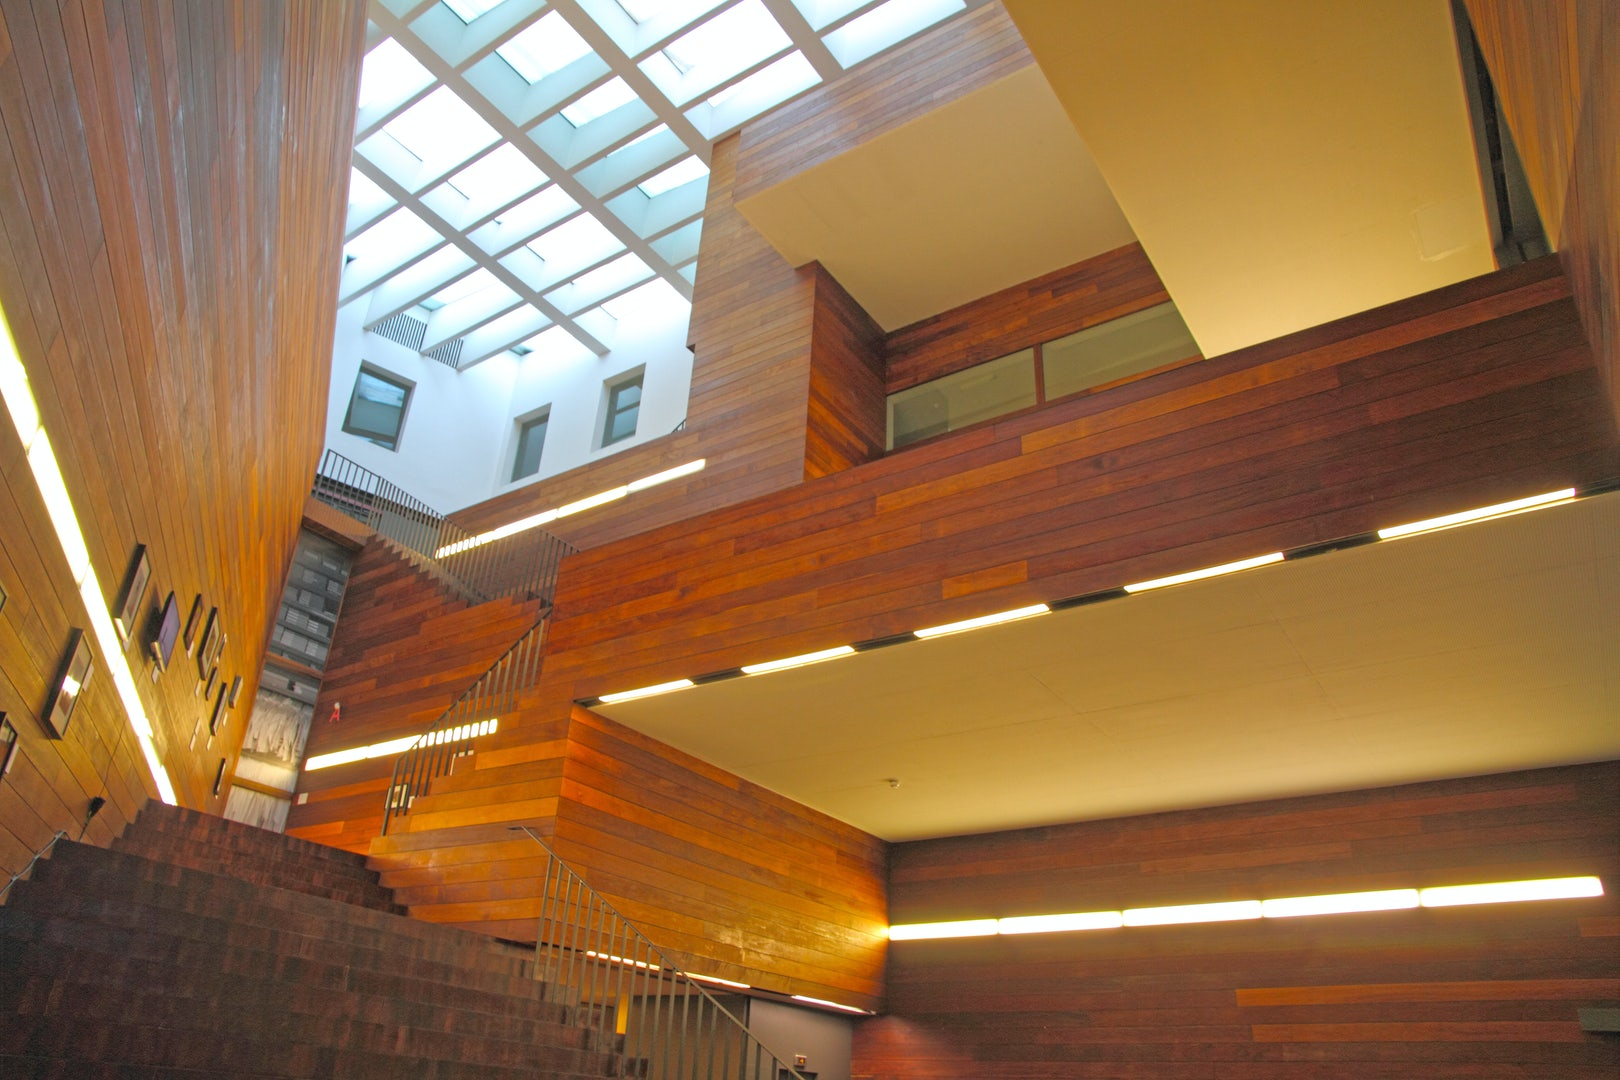 interior with wooden and glass design at the Antwerp museum of fashion